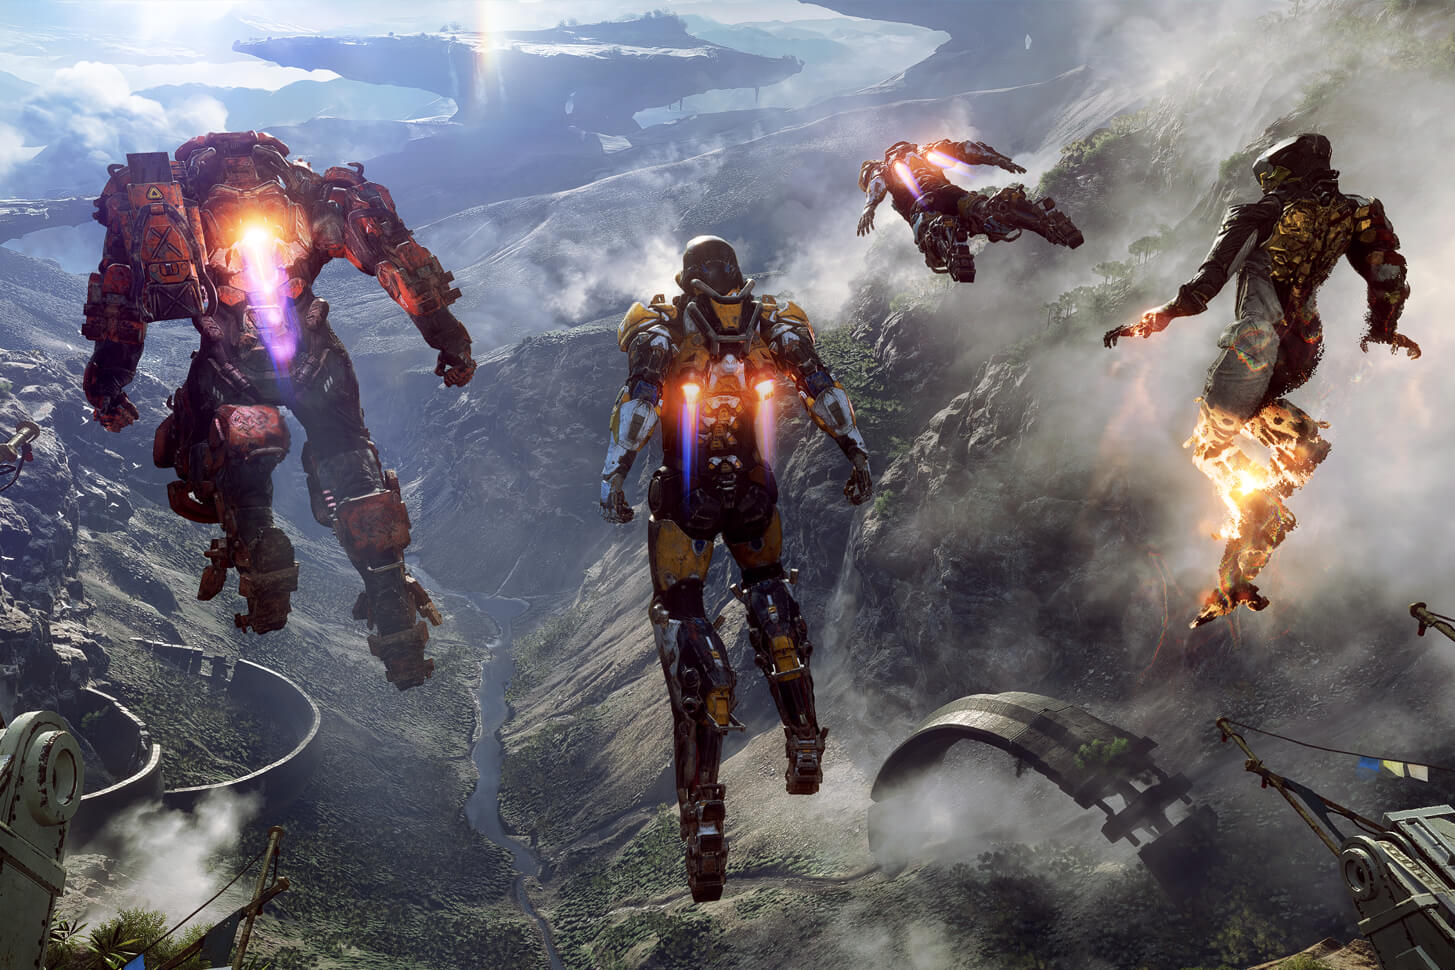 Anthem Icetide Update 1.6.0 is now available for download, and here are its full patch notes